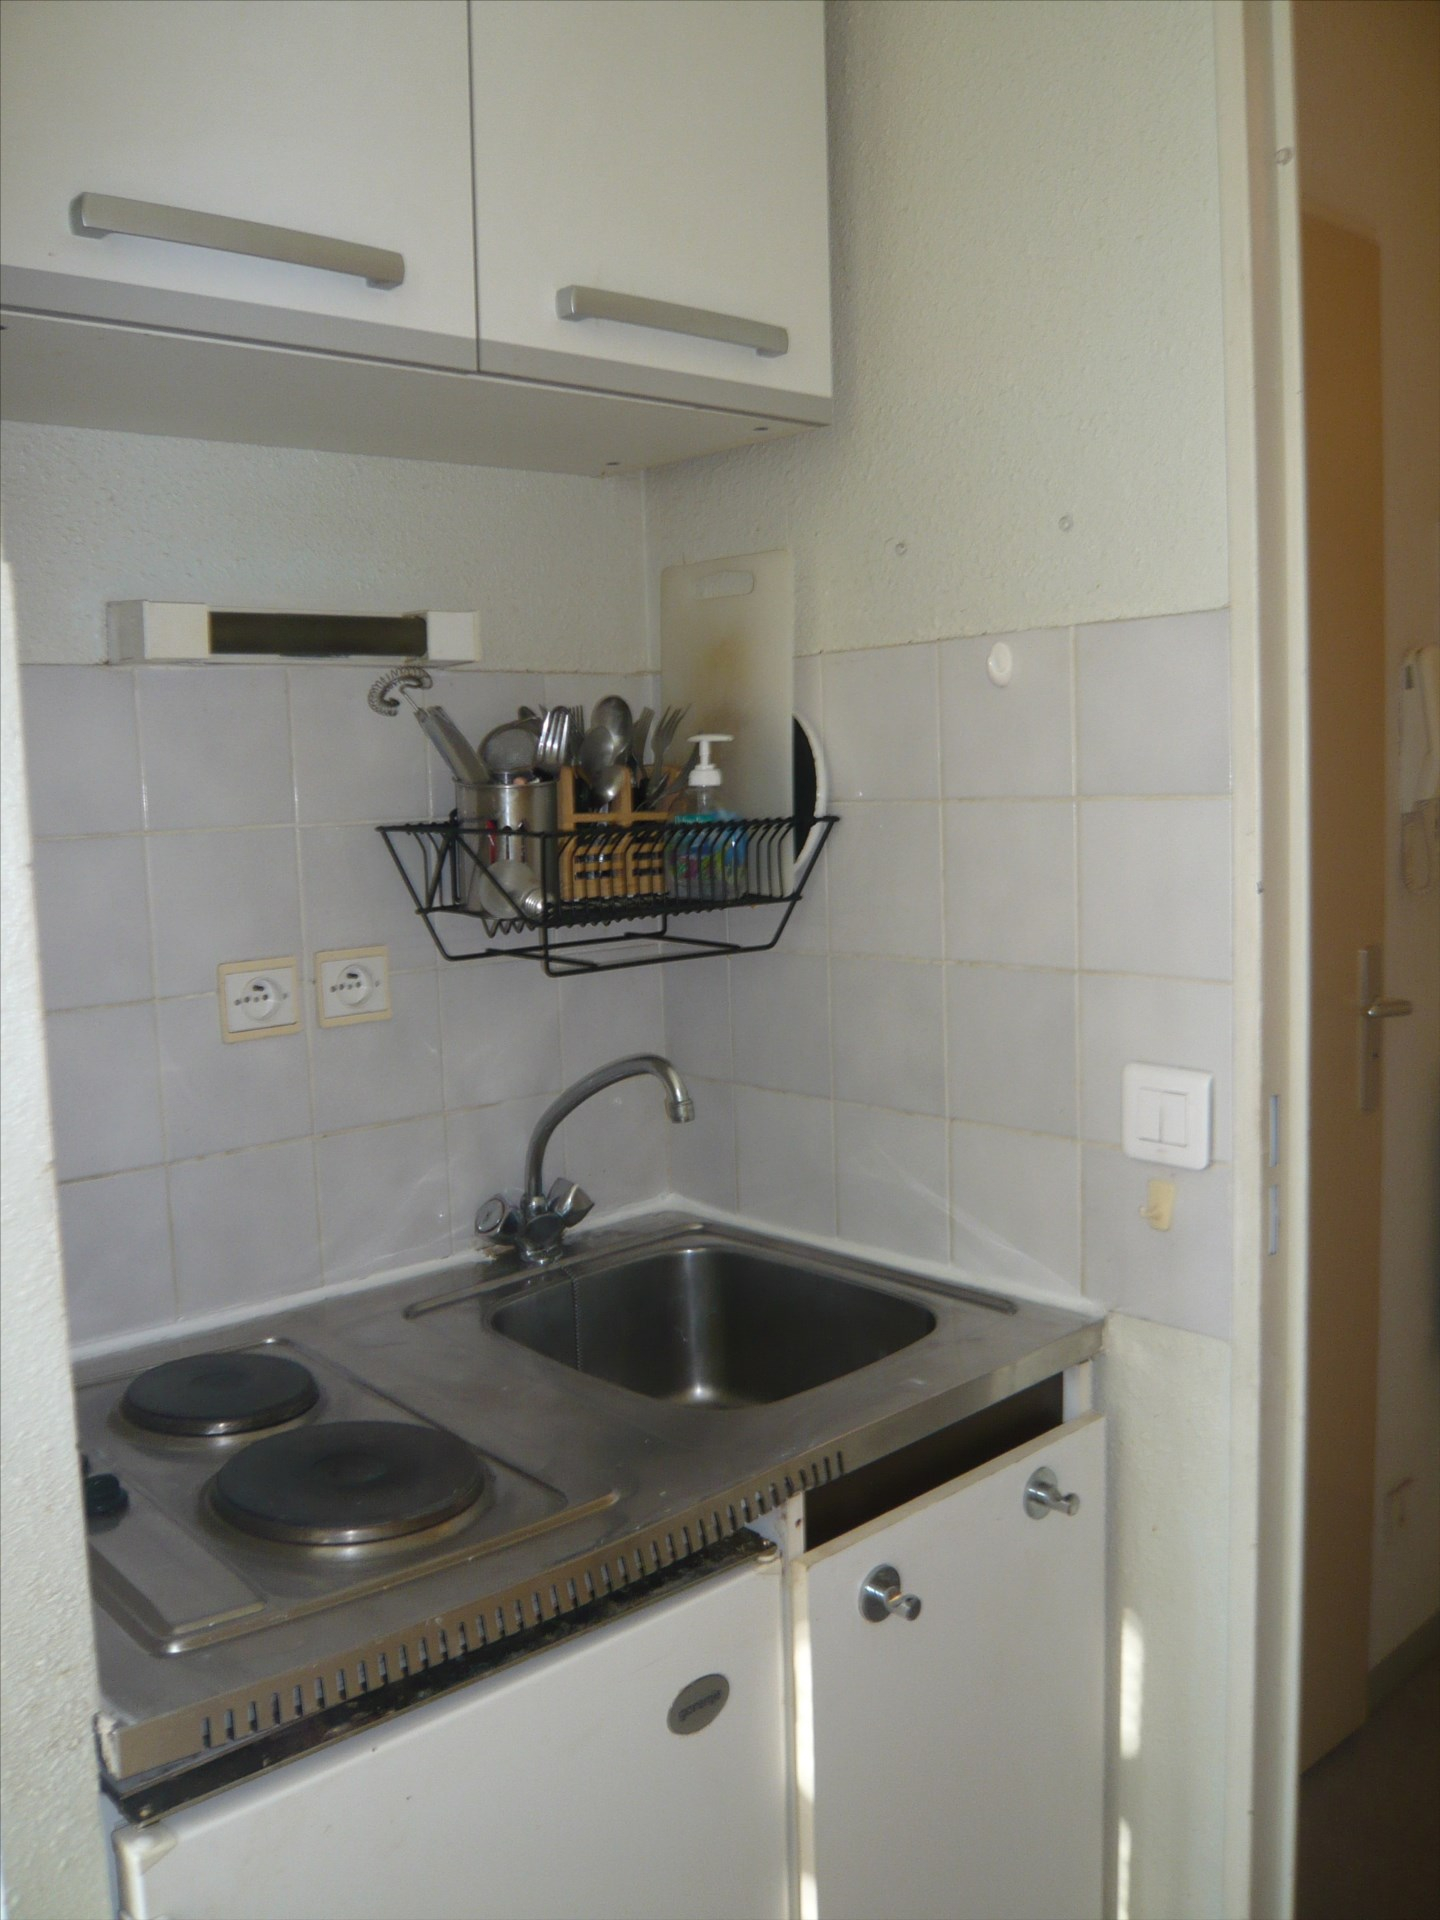 Location Appartement MONTPELLIER surface habitable de 19 m²